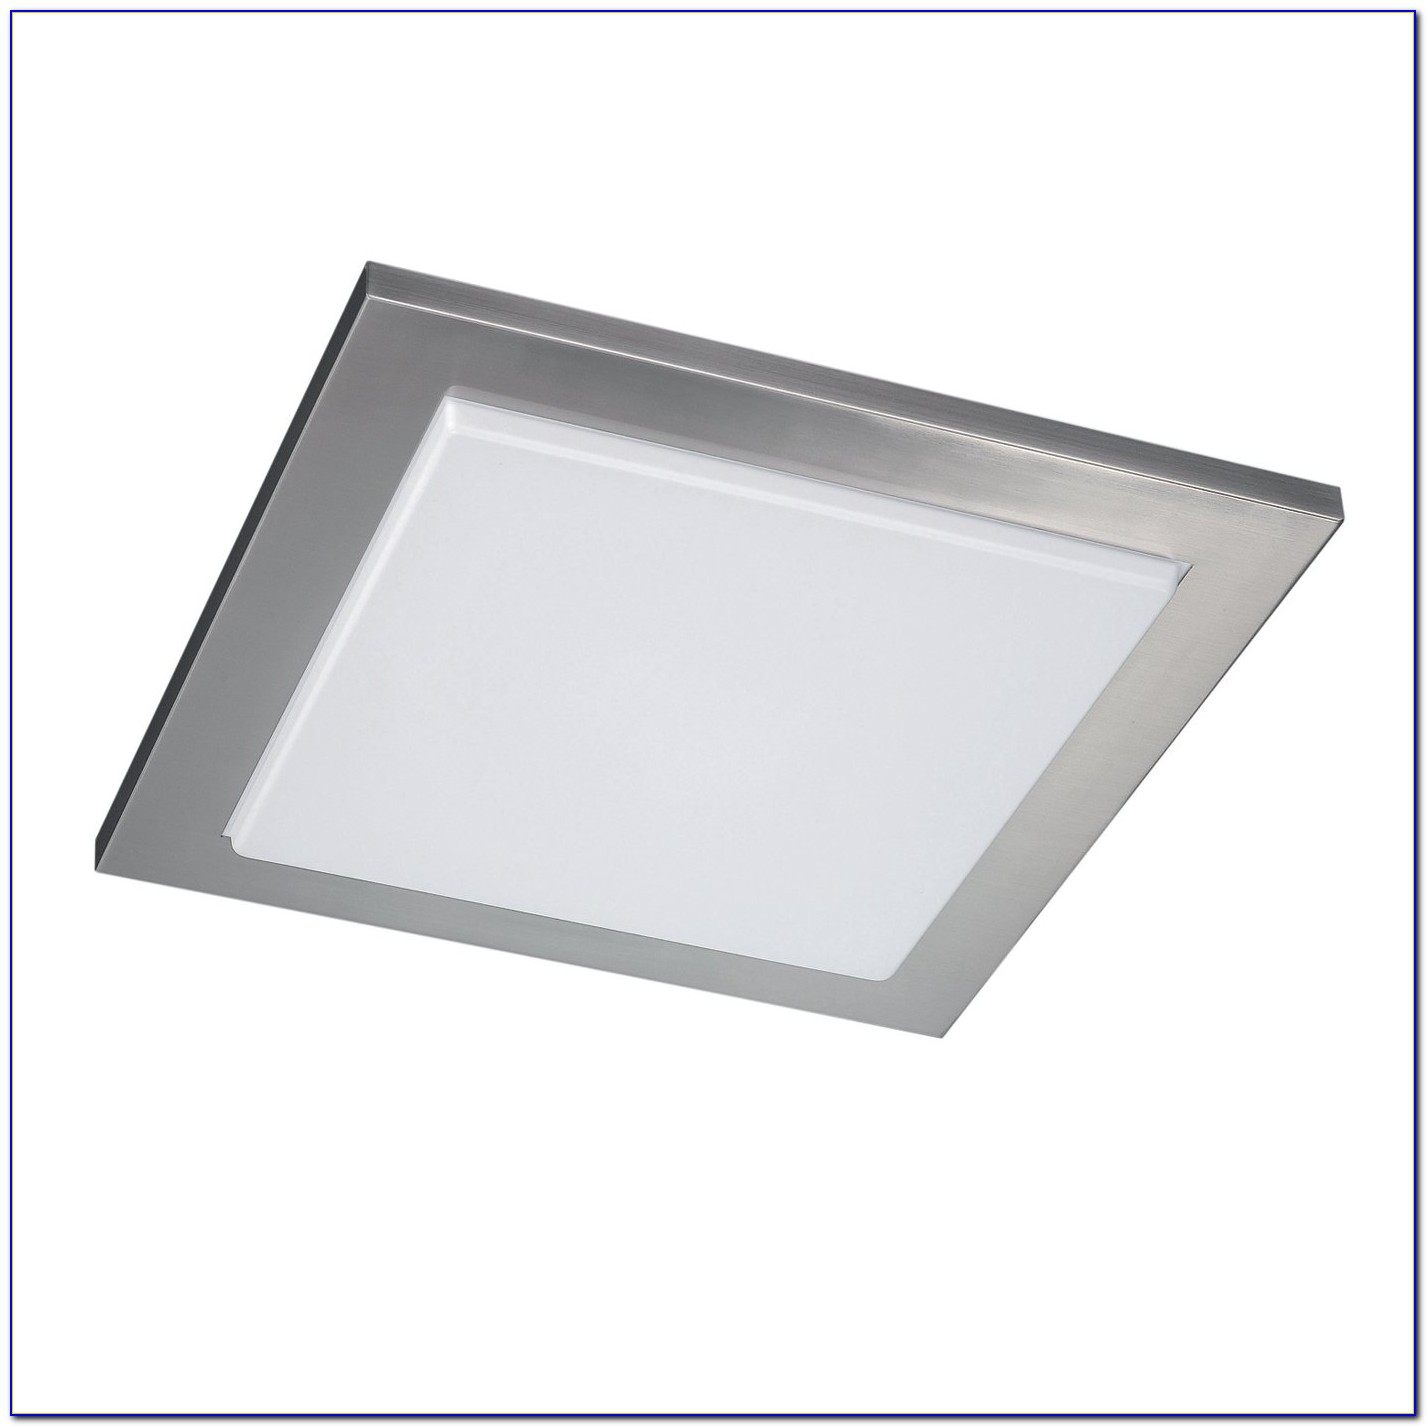 Square Ceiling Light Fixture Recessed